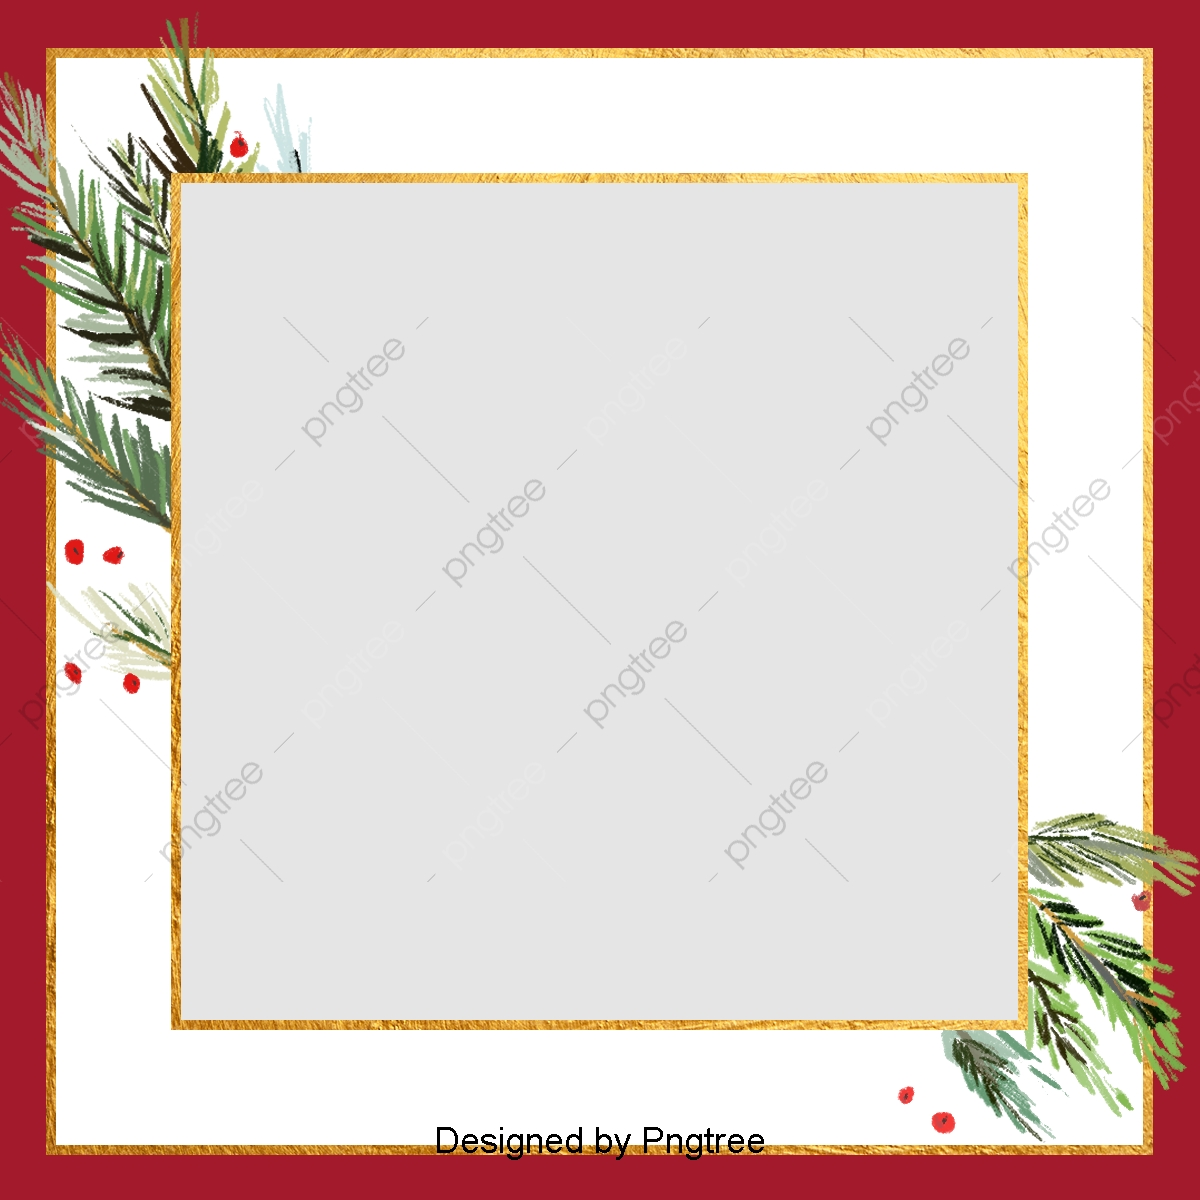 Christmas Card Frame.Red Retro Simple Christmas Card Frame Background Border